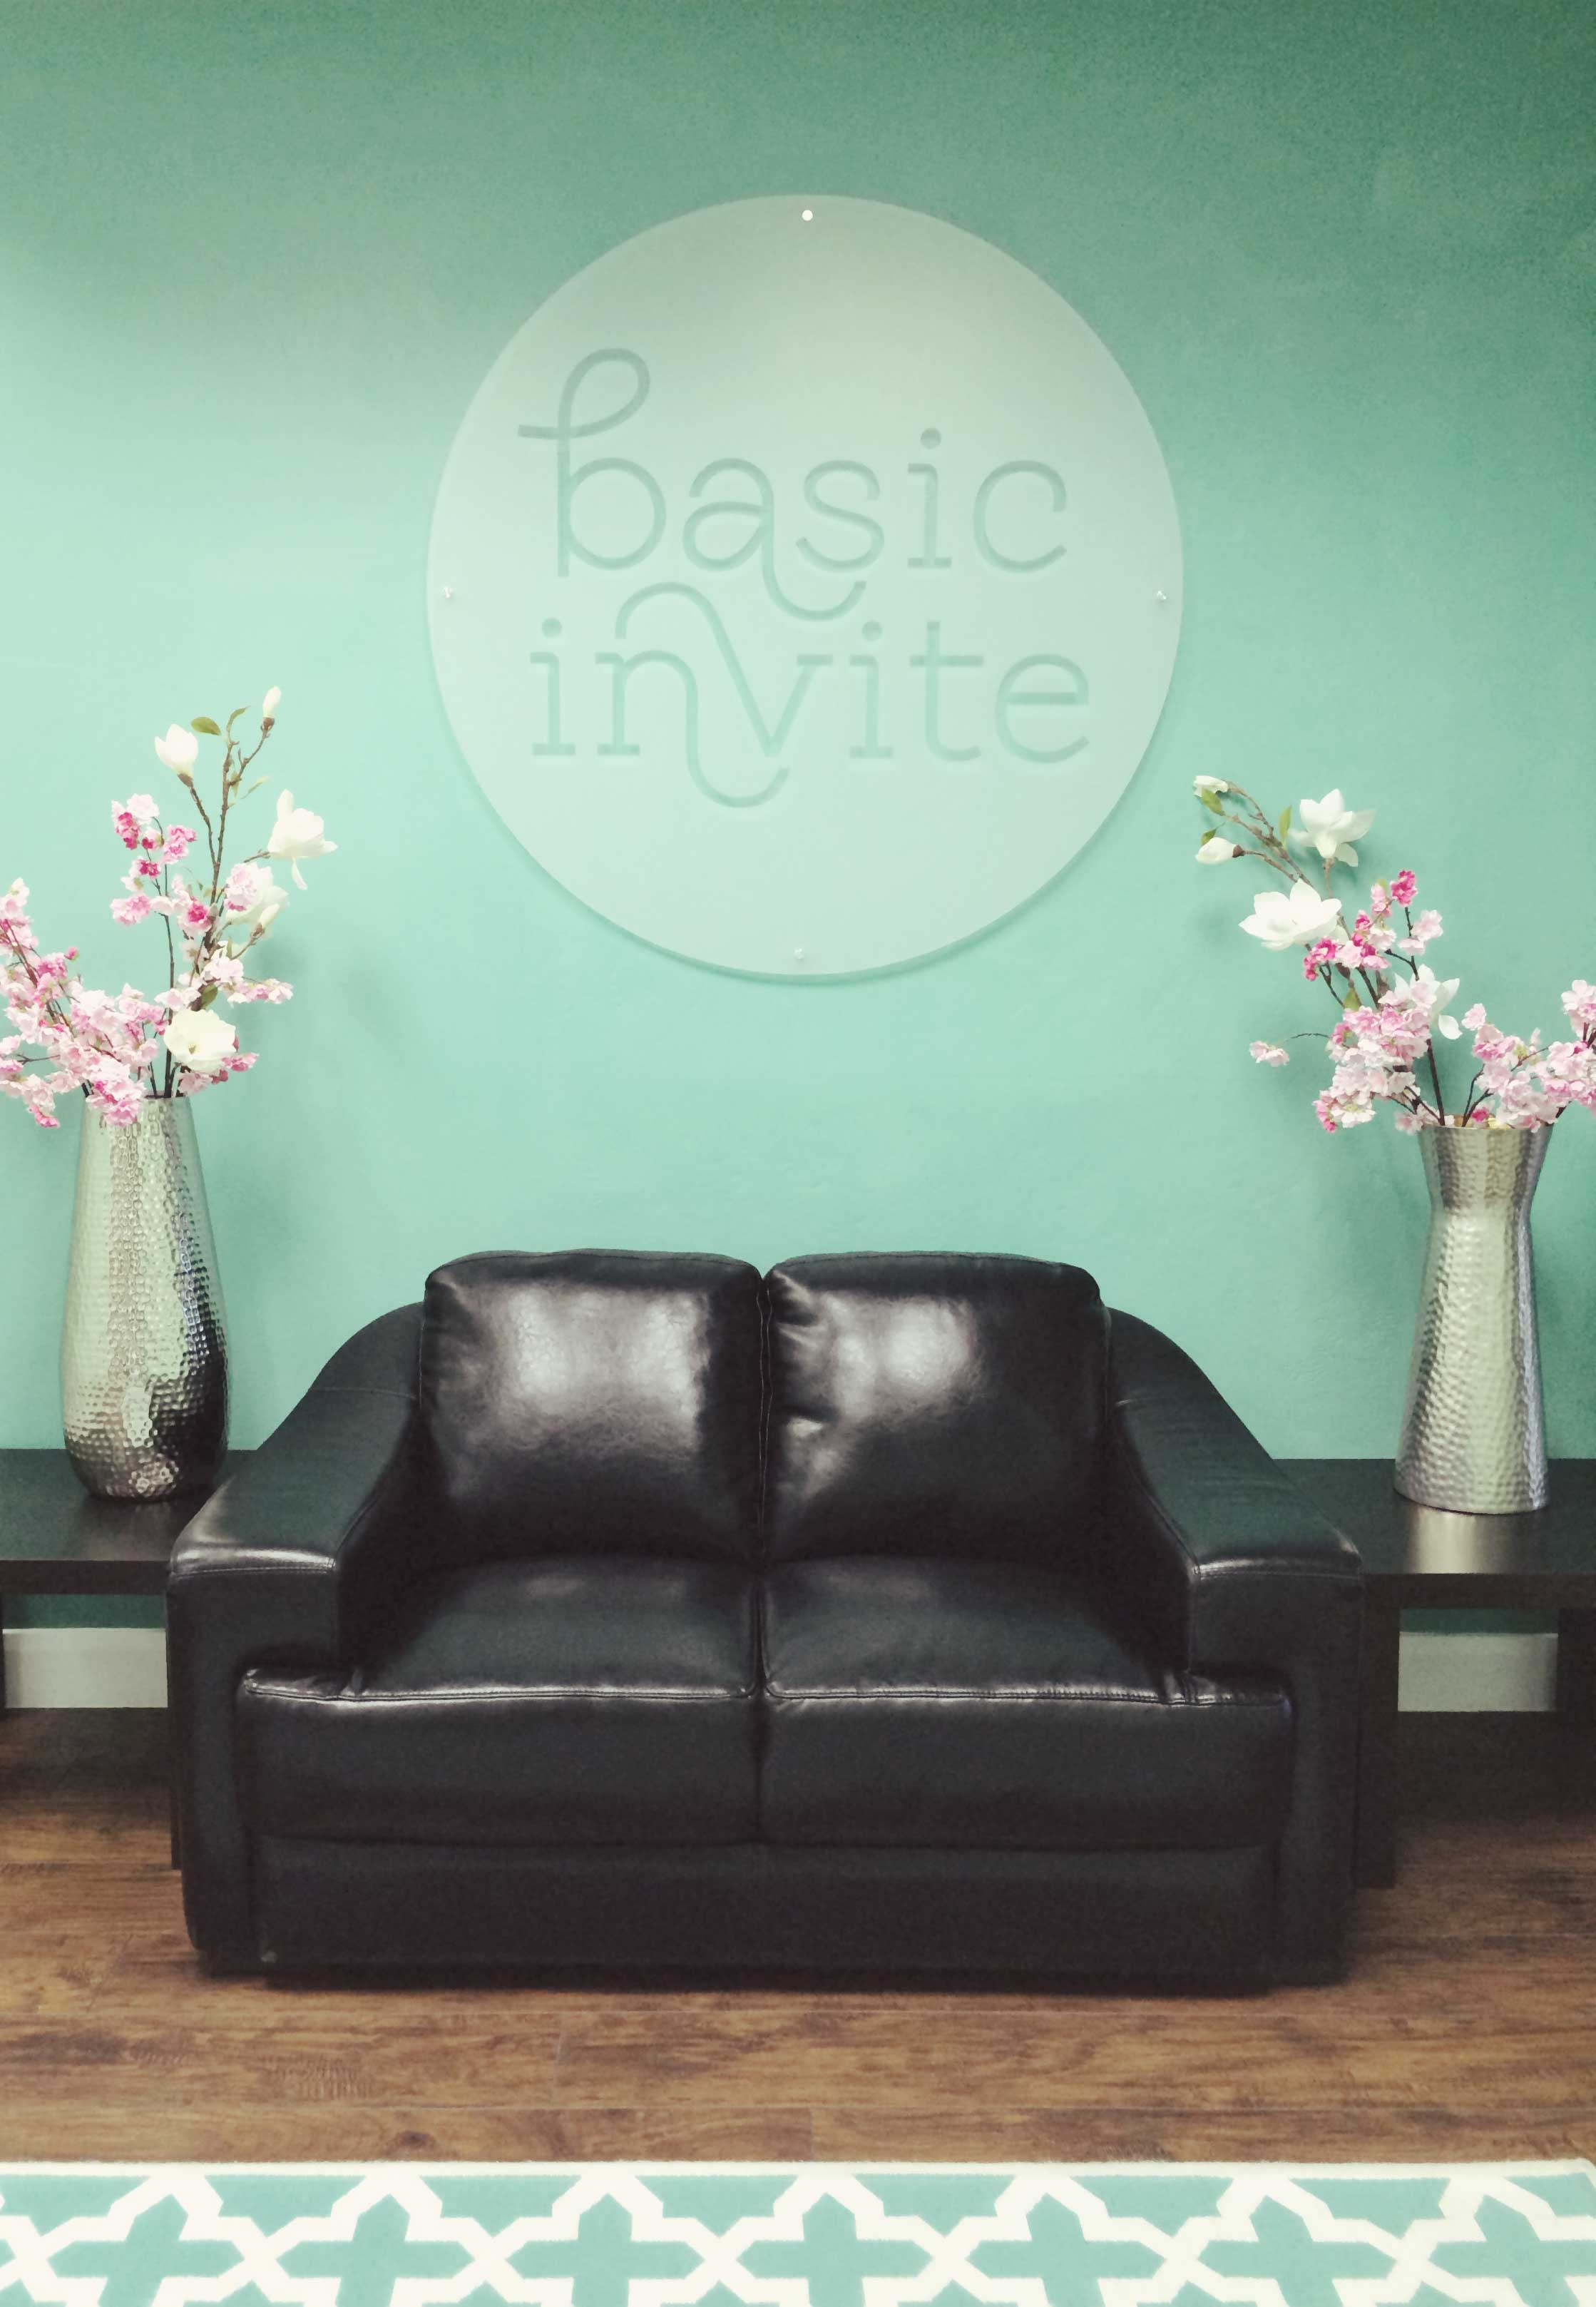 Basic Invite Office